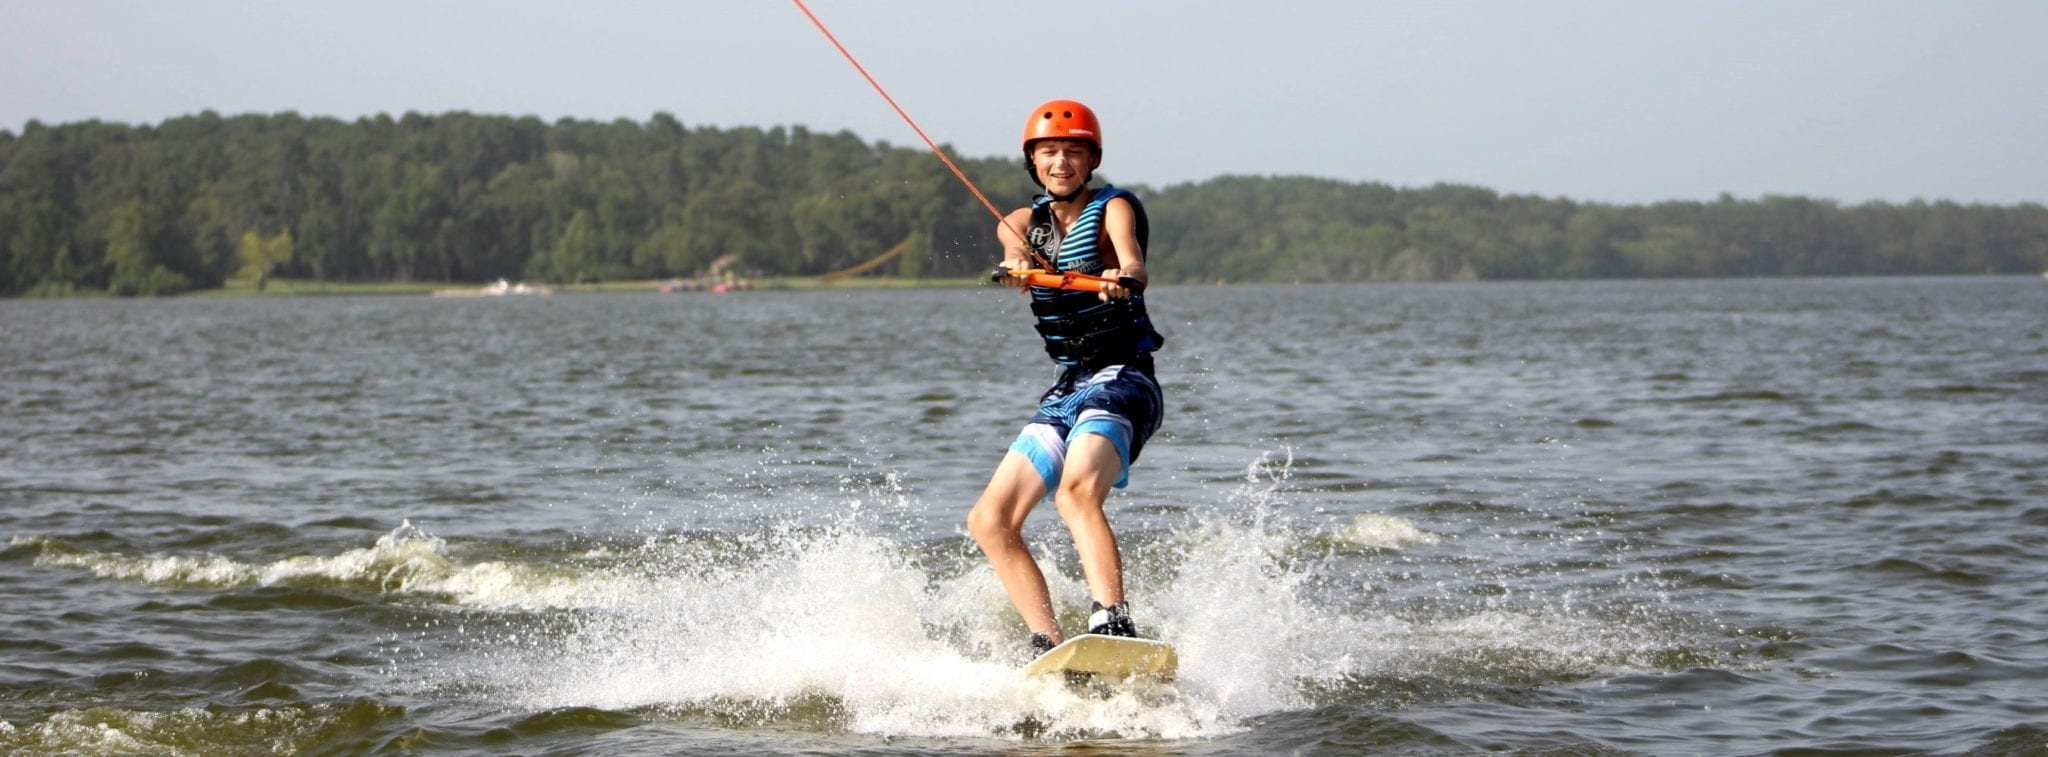 A young man riding a wakeboard on a lake.